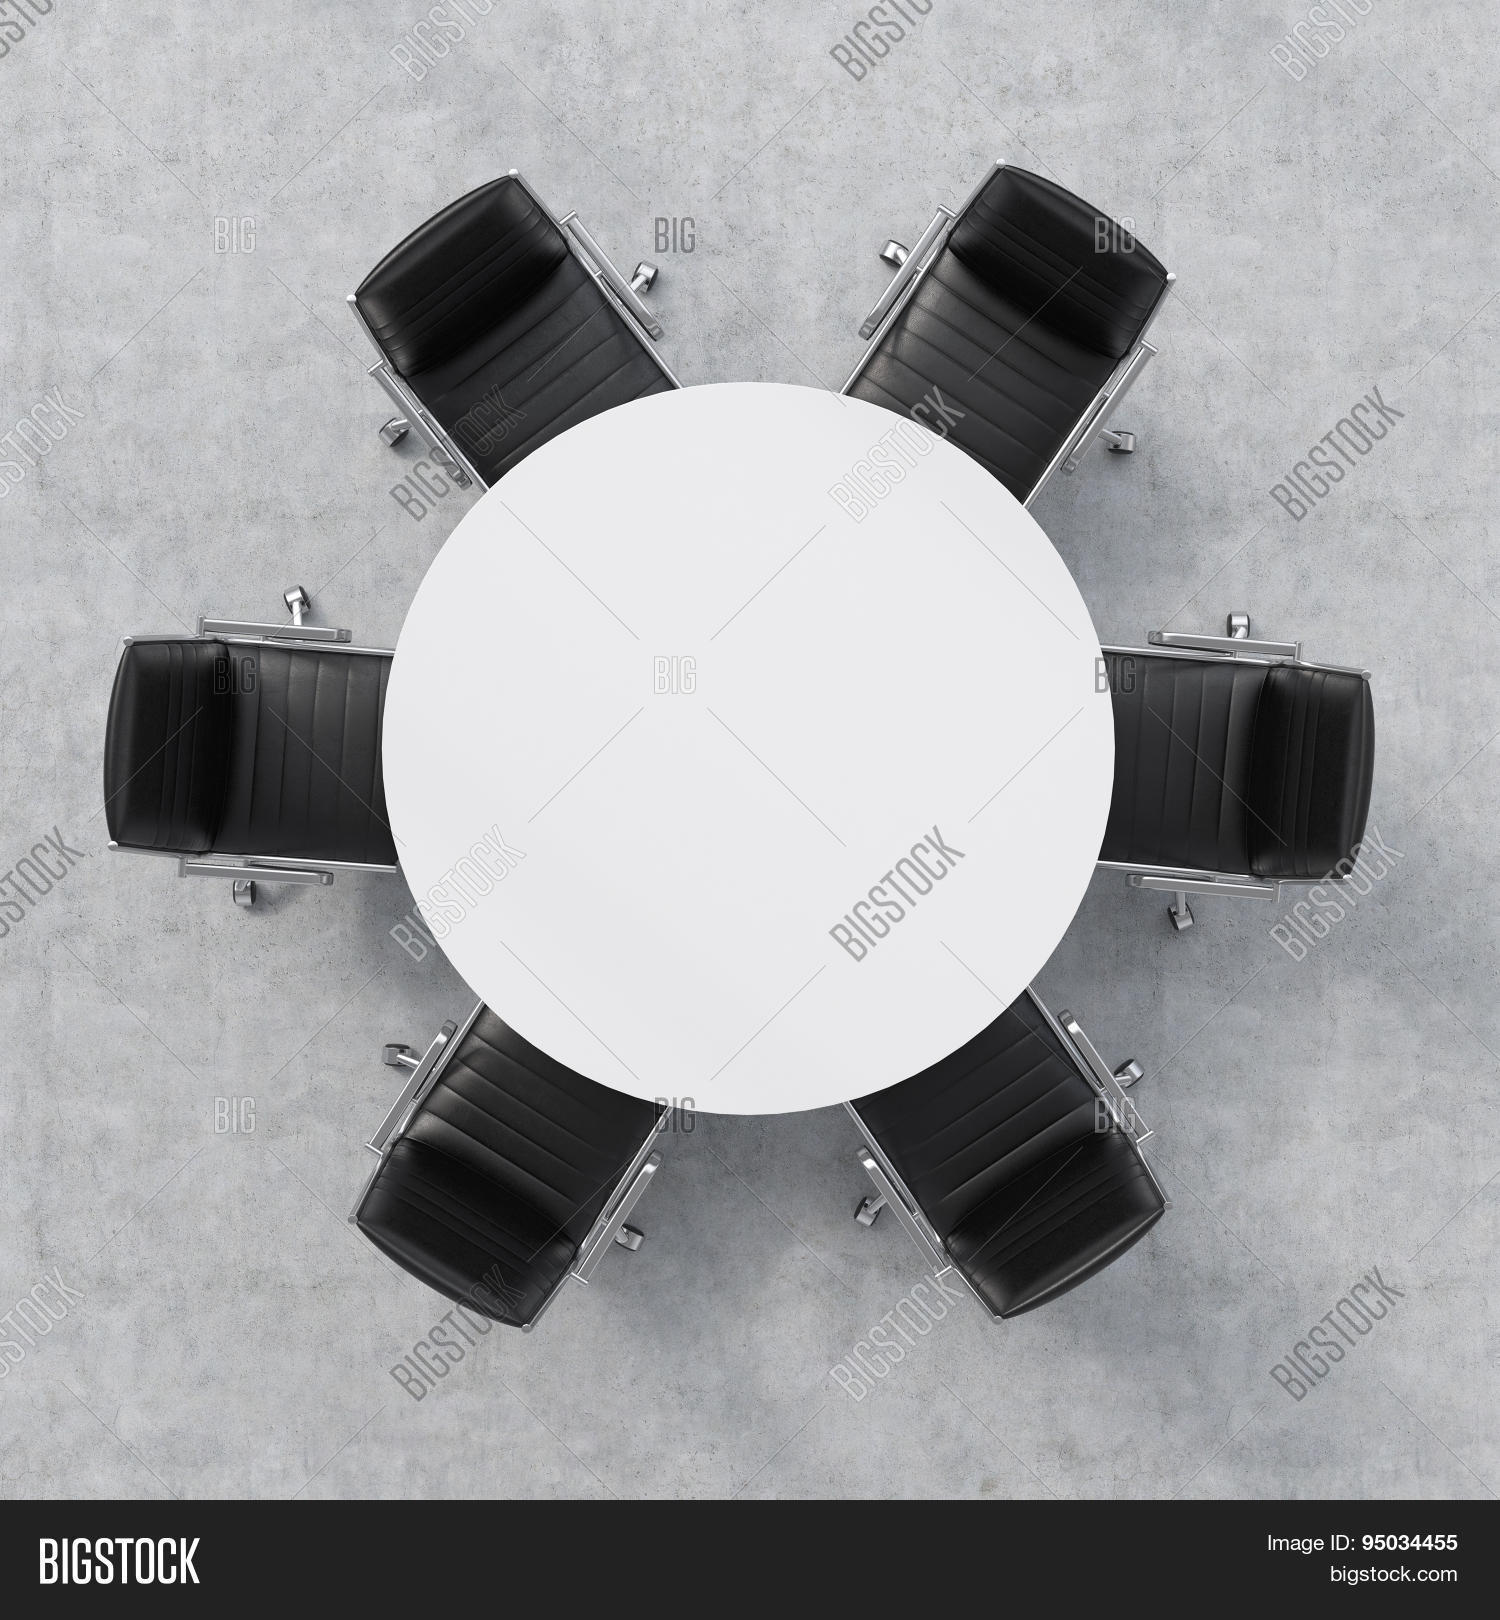 table and chairs top view. Top View Of A Conference Room. White Round Table And Six Chairs Around.